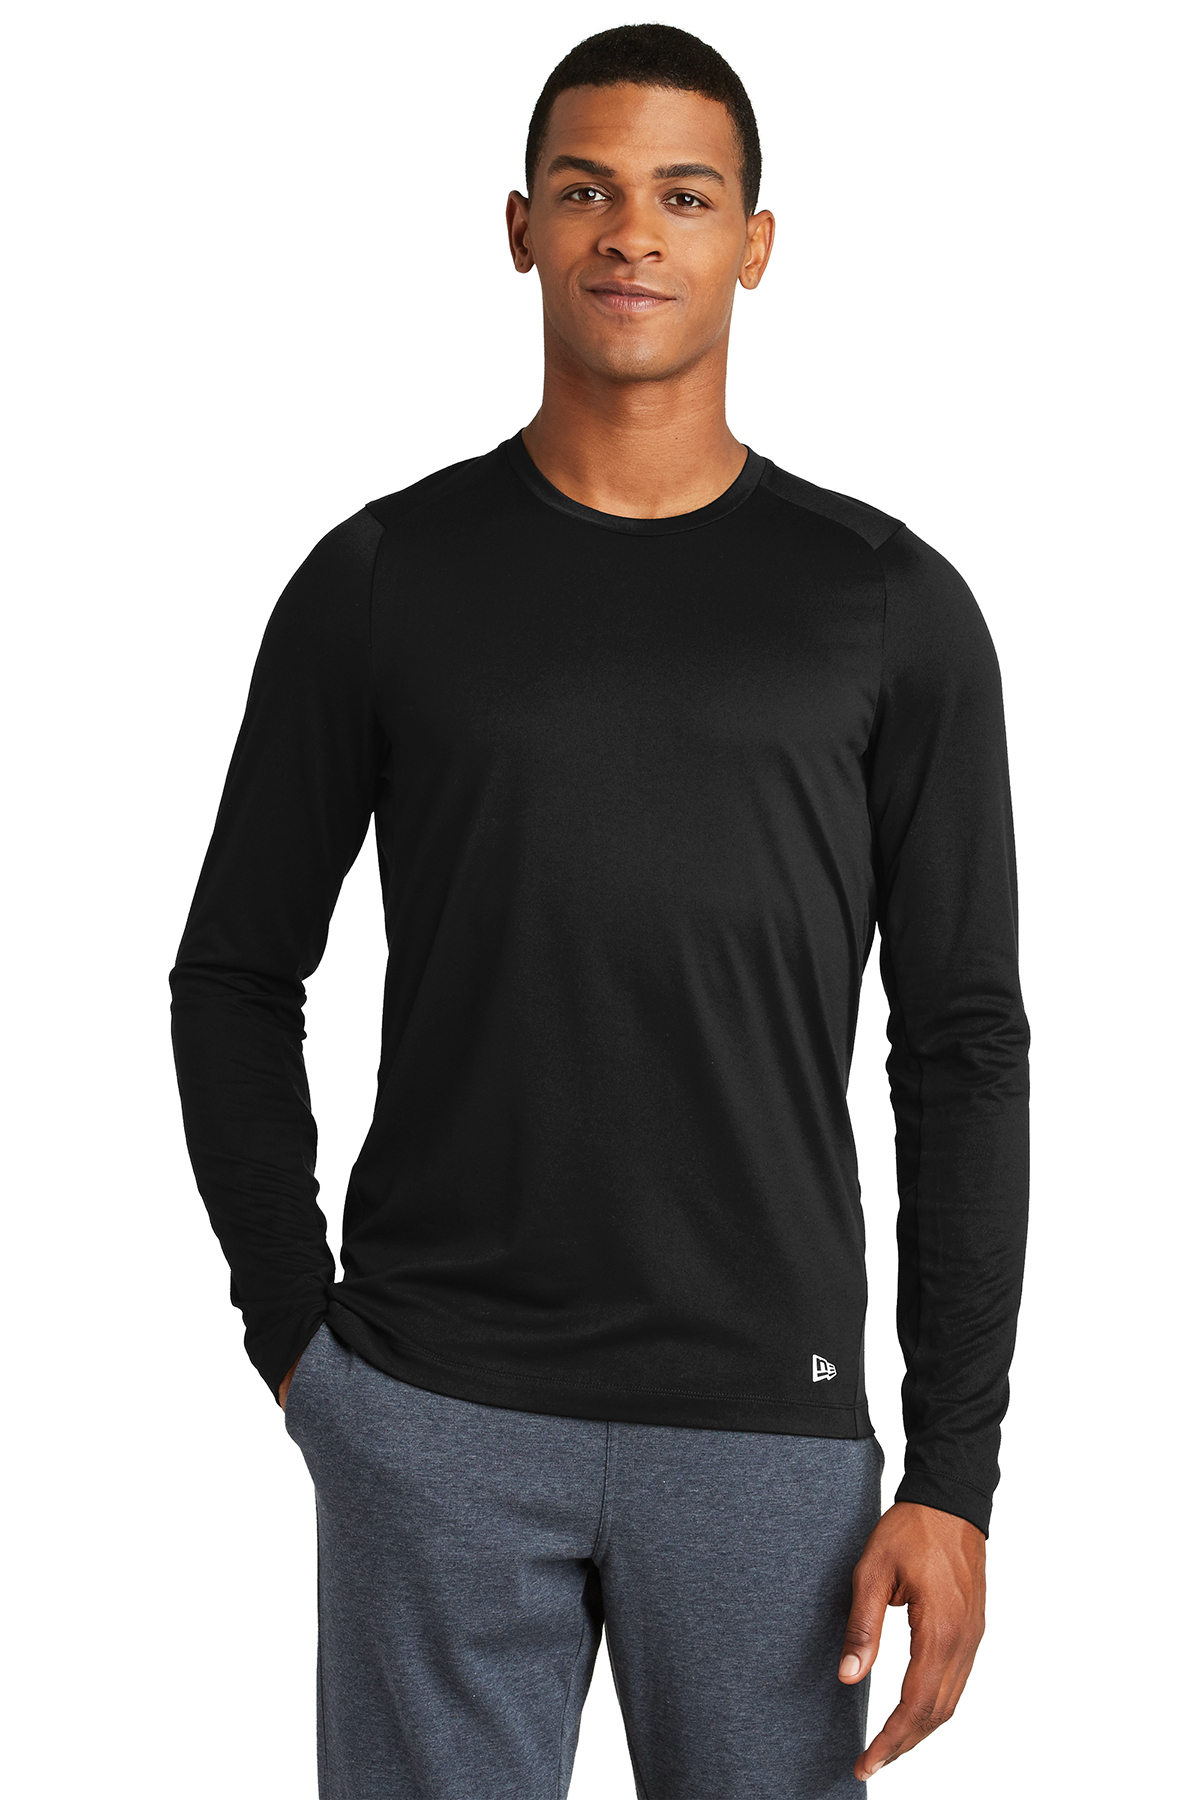 New Era NEA201 - Men's Series Performance Long Sleeve Crew Tee